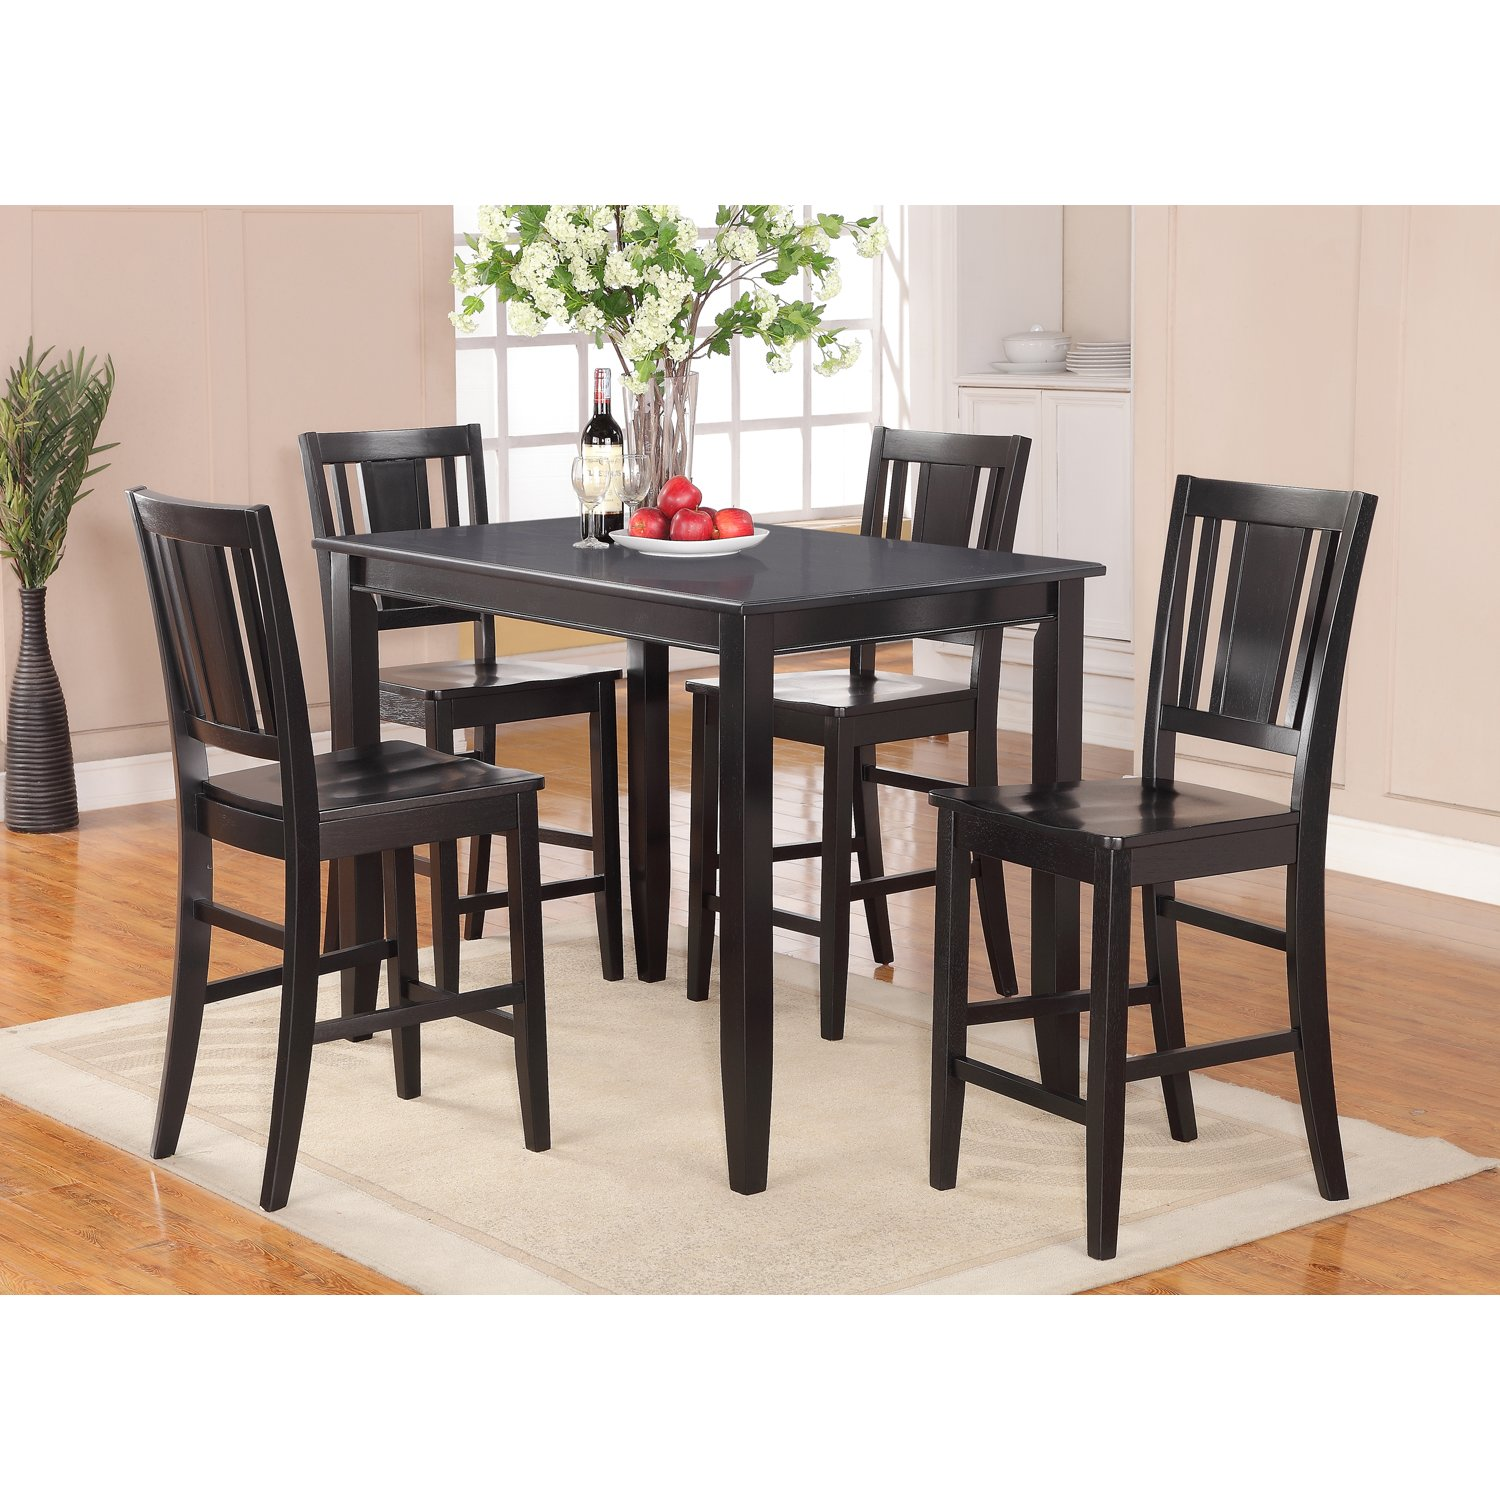 cute lightner 5 piece counter height dining set counter height dining set